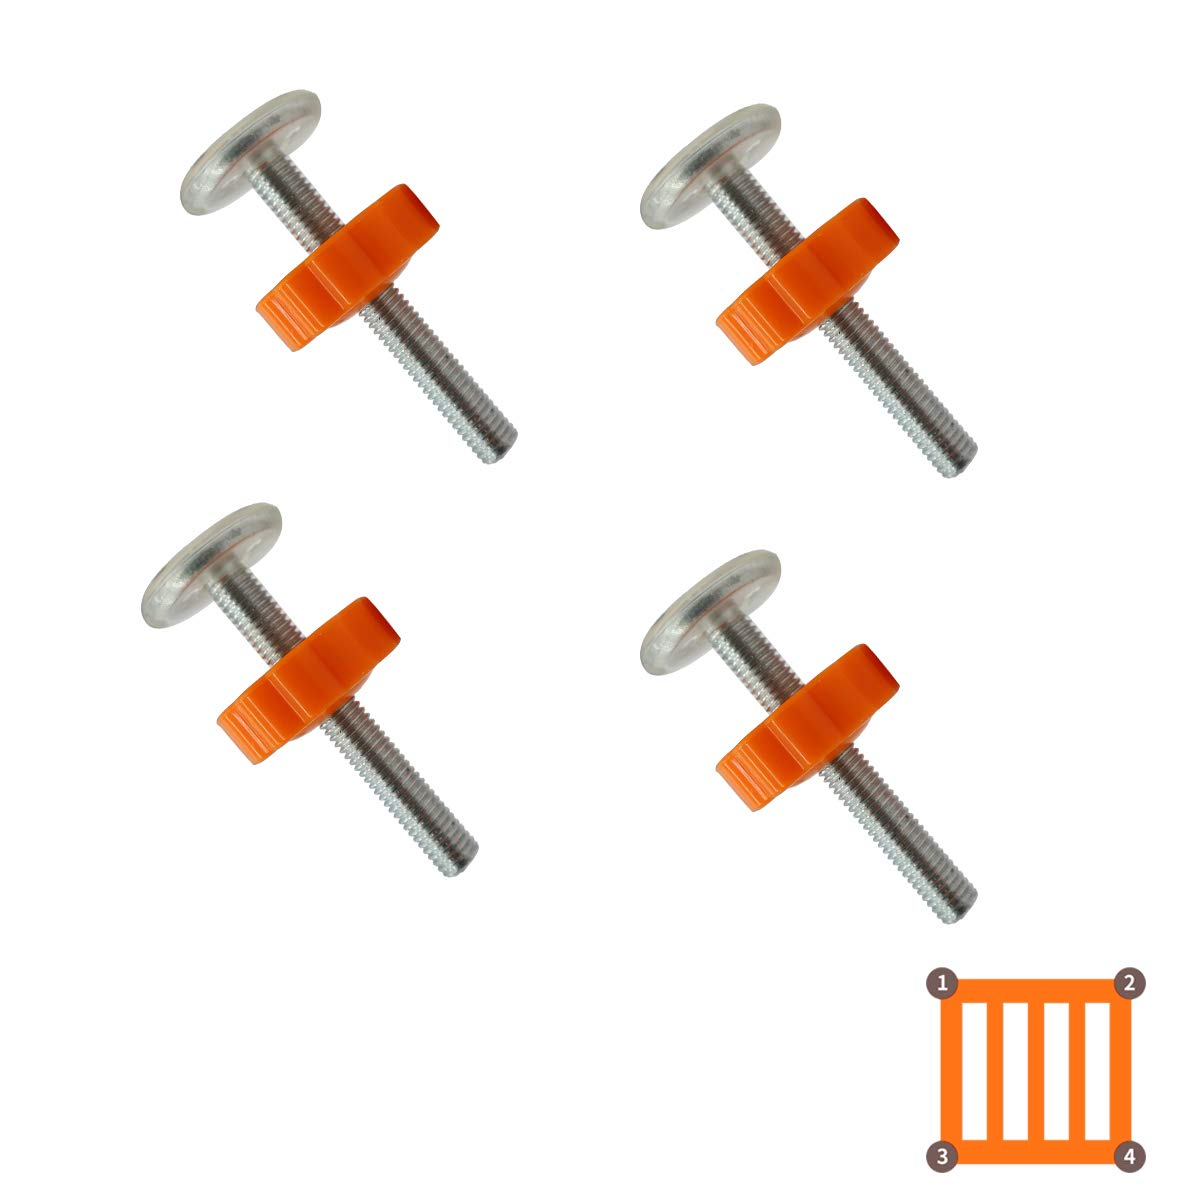 10mm Spindle Rods for Pressure Mounted Gates Replacement Set 4 Pack of M10 Spindle Screw Bolts for Baby and Pet Safety Gates Black KiraKira Baby gate Screw Bolts 4pcs M10